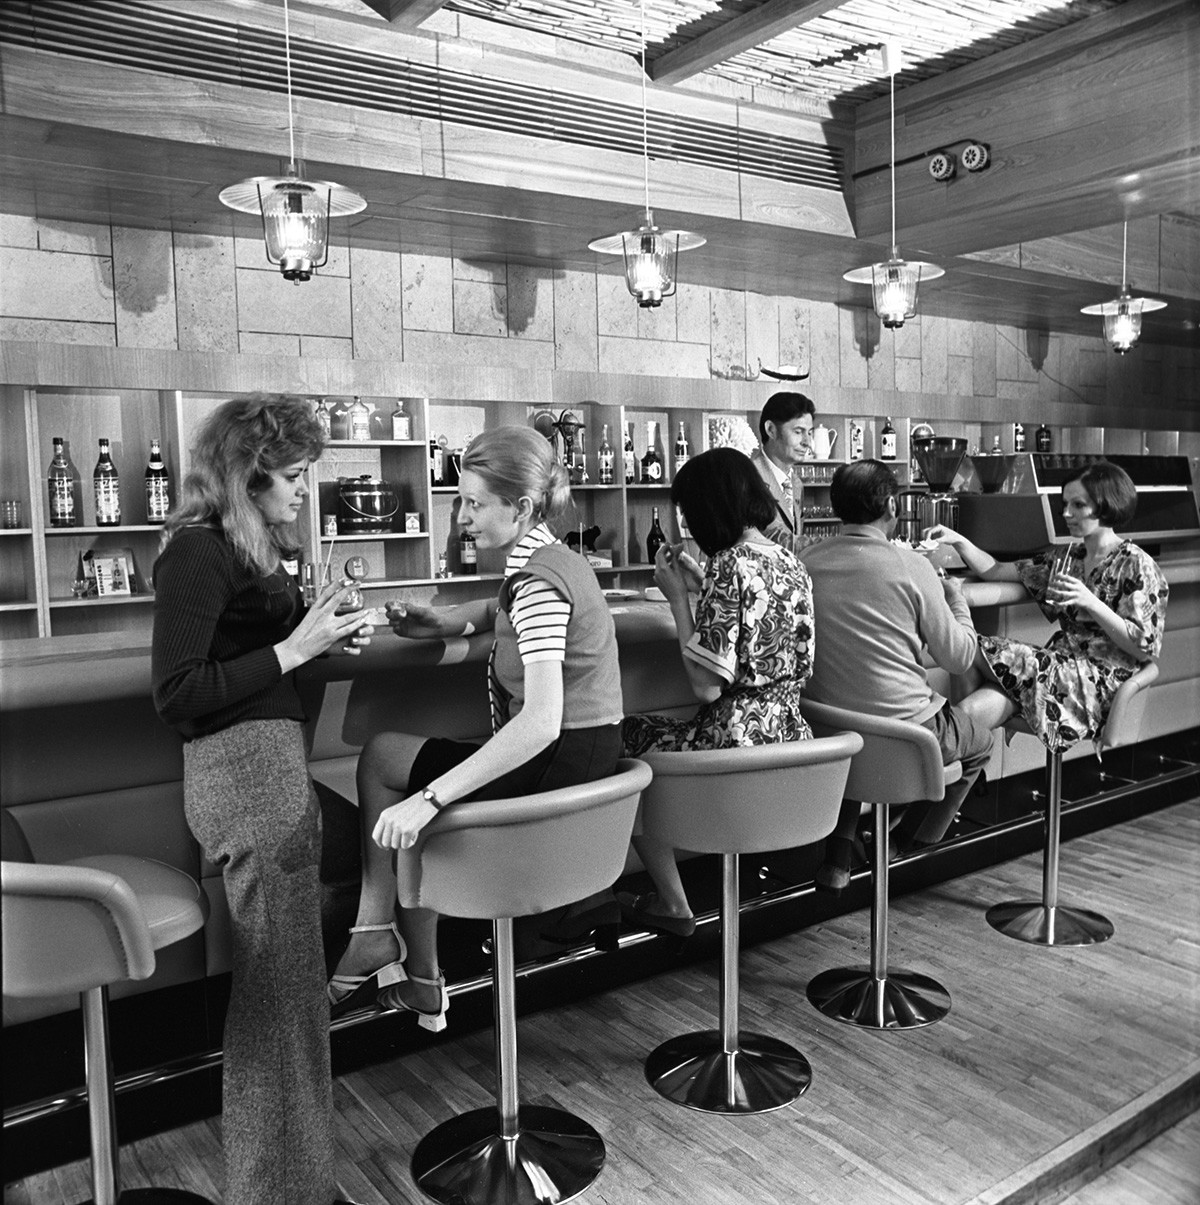 Bar of the Intourist hotel in Rostov-on-don. 1973